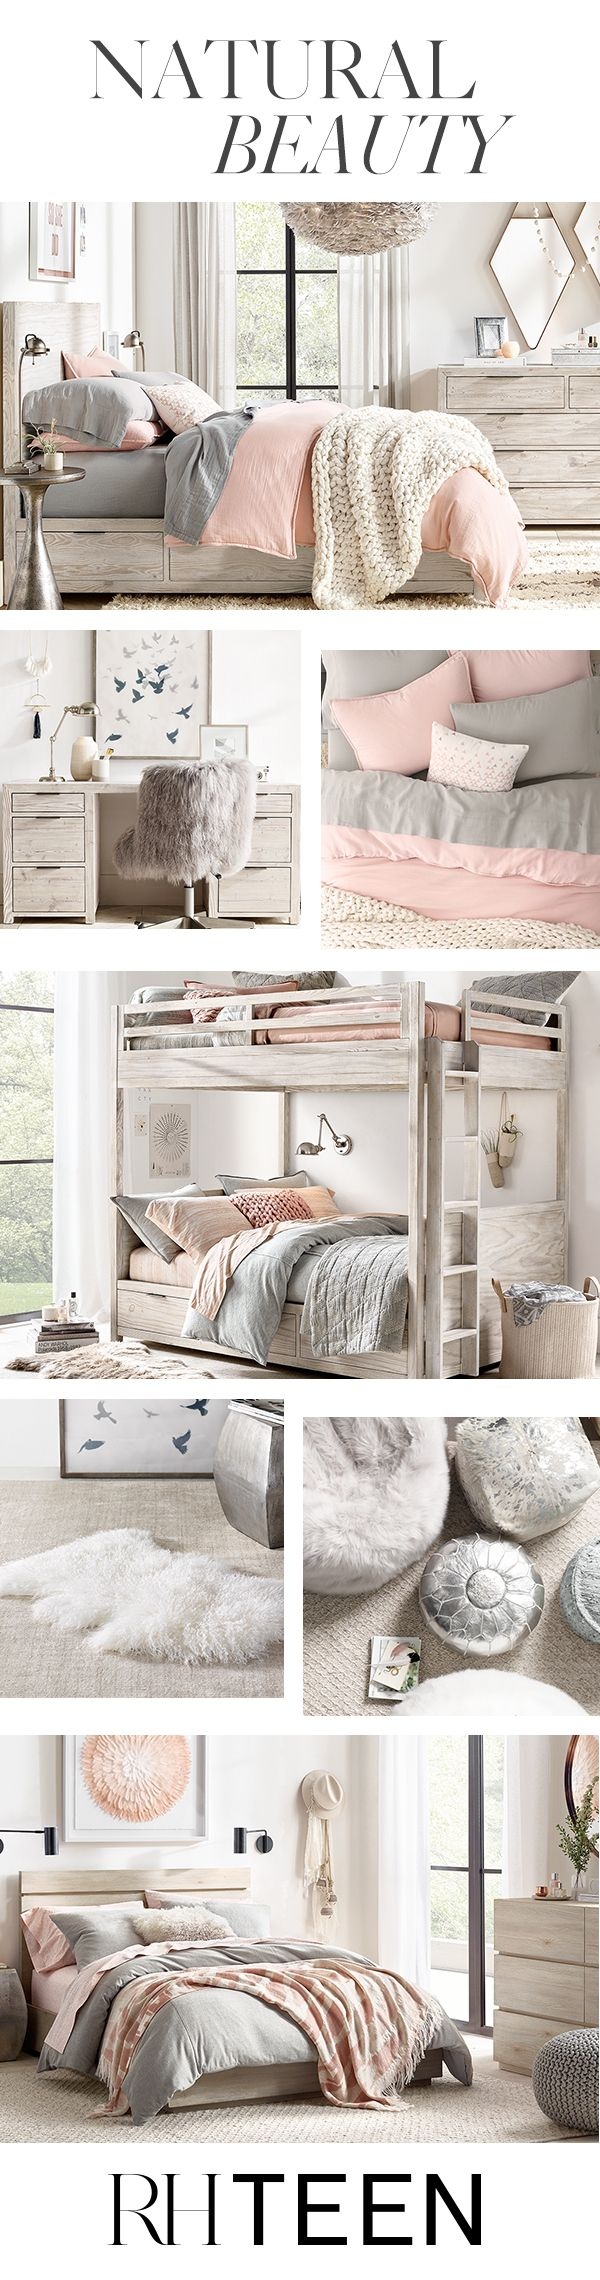 vaulted ceiling bedroom. This reminds me of Danielle\u0027s attic ...